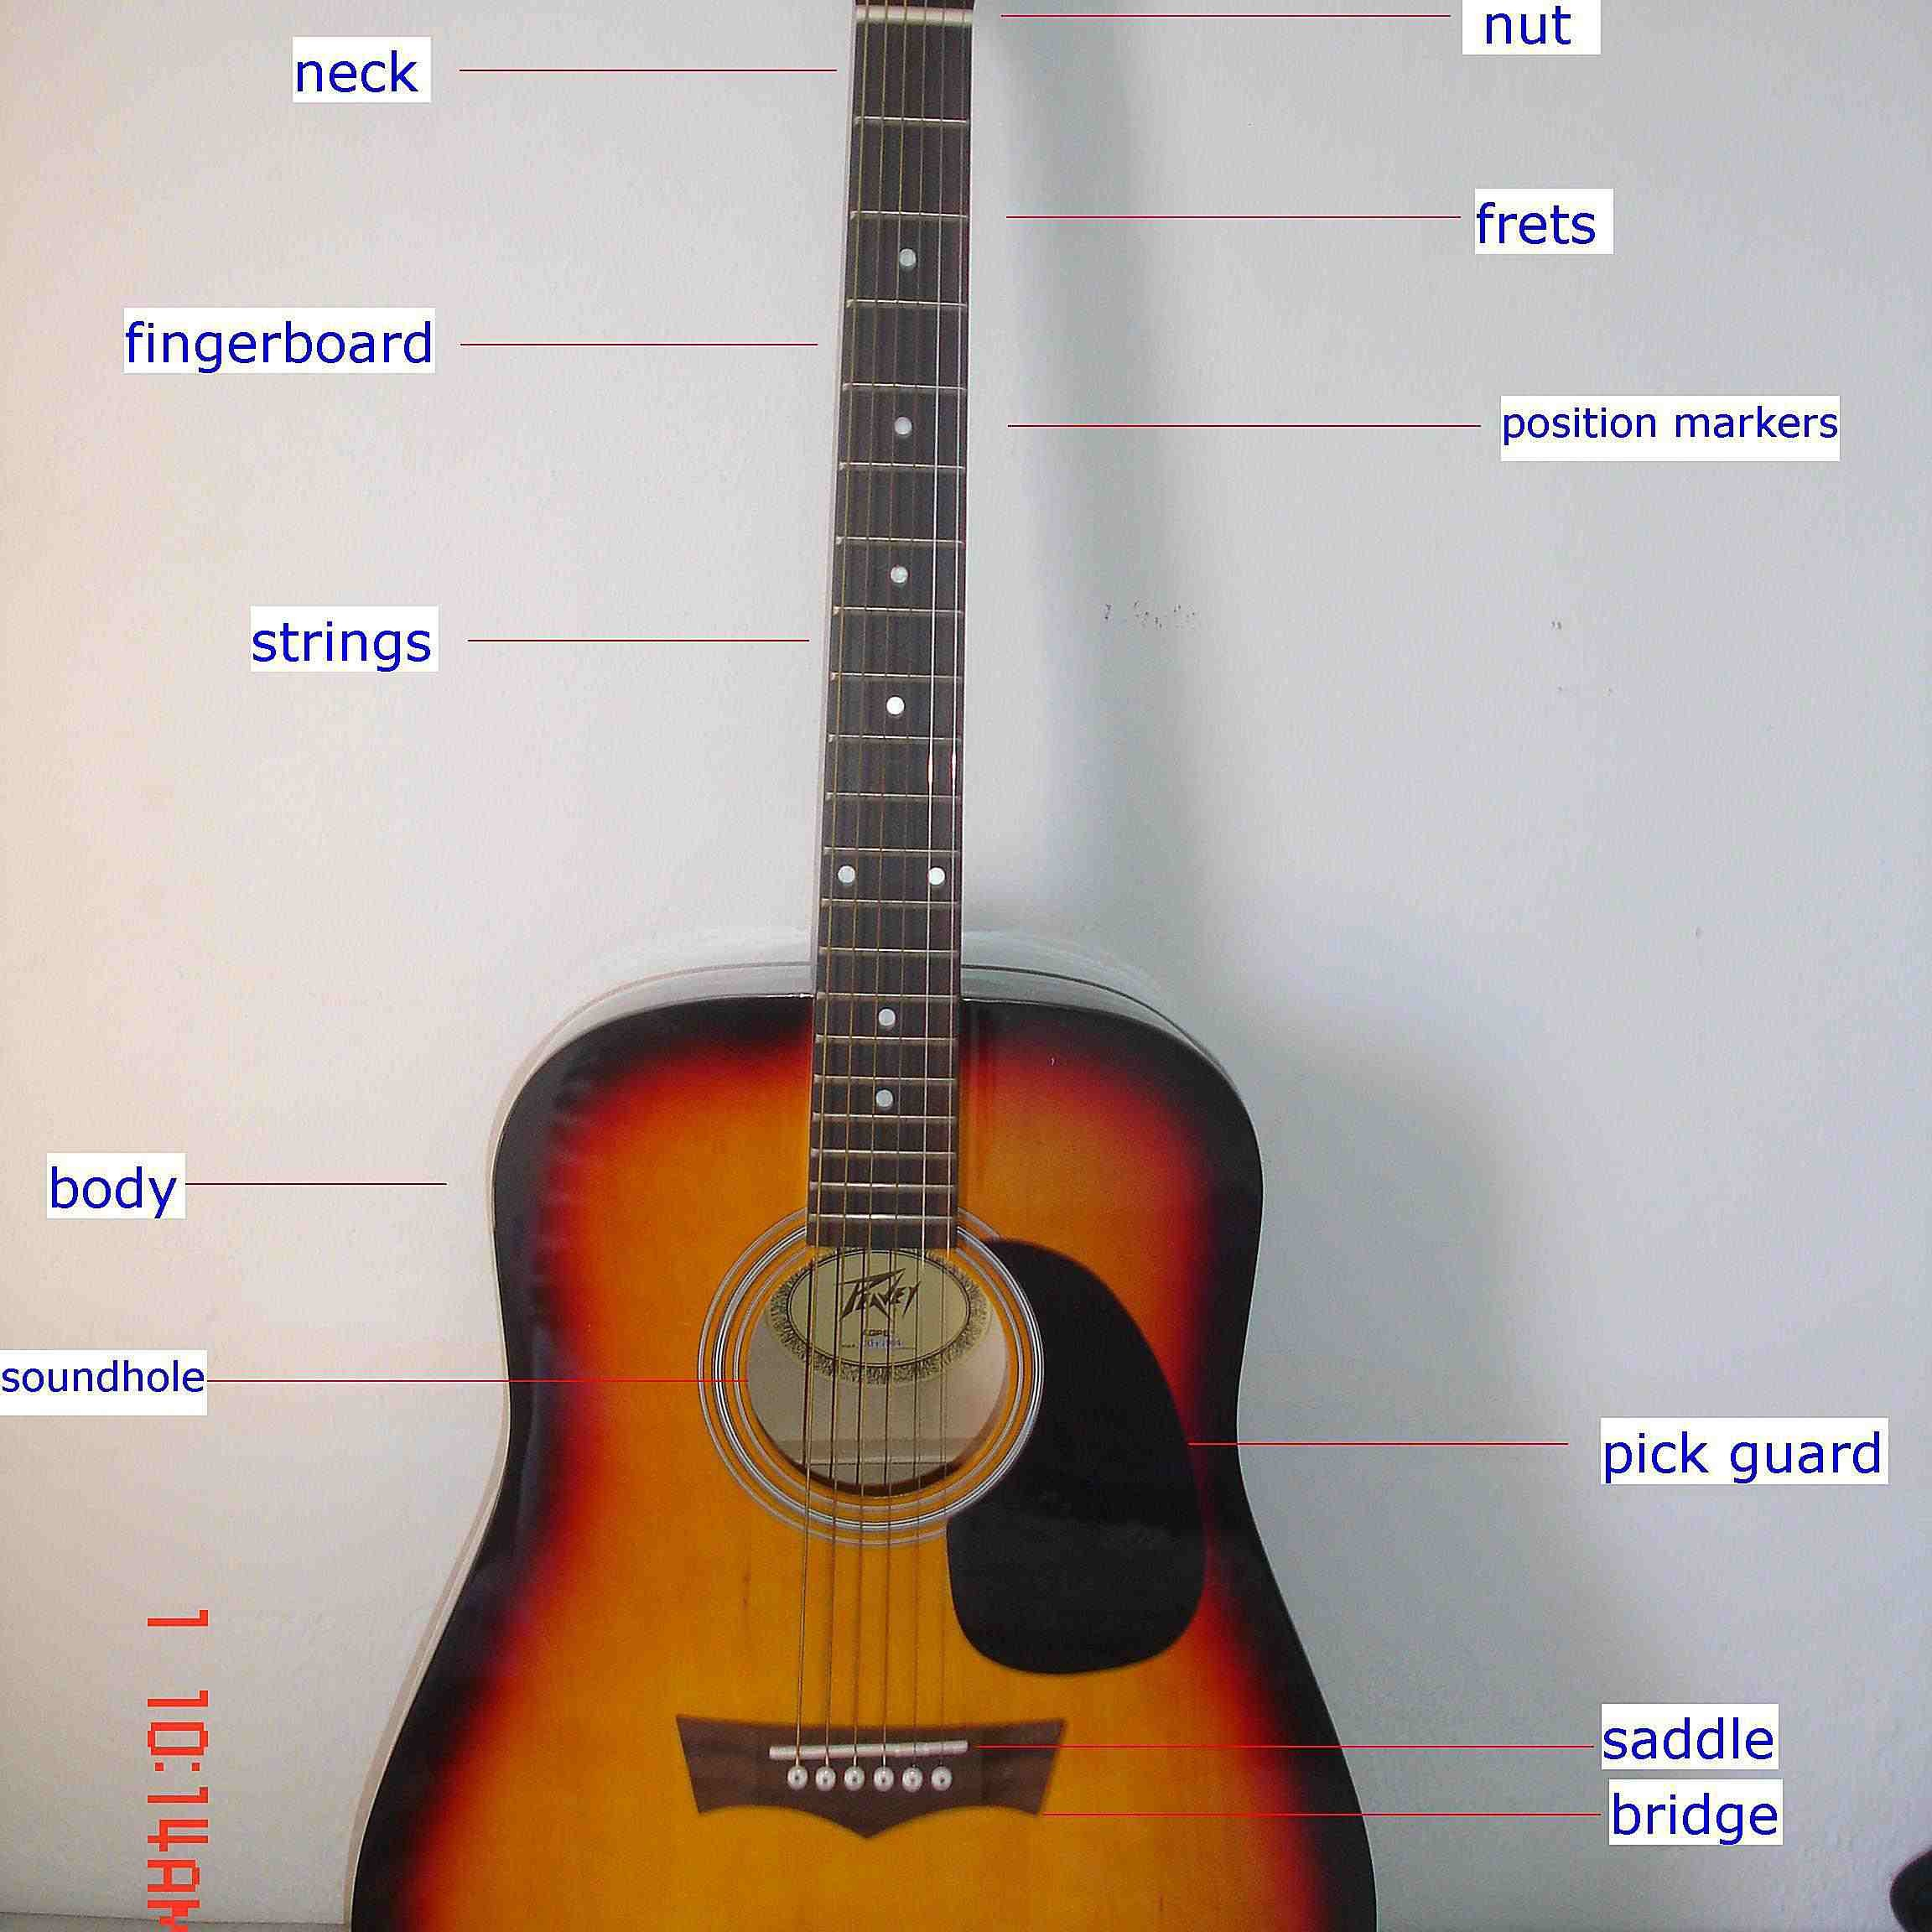 Acoustic Guitar Parts Diagram the Parts Of An Acoustic Guitar